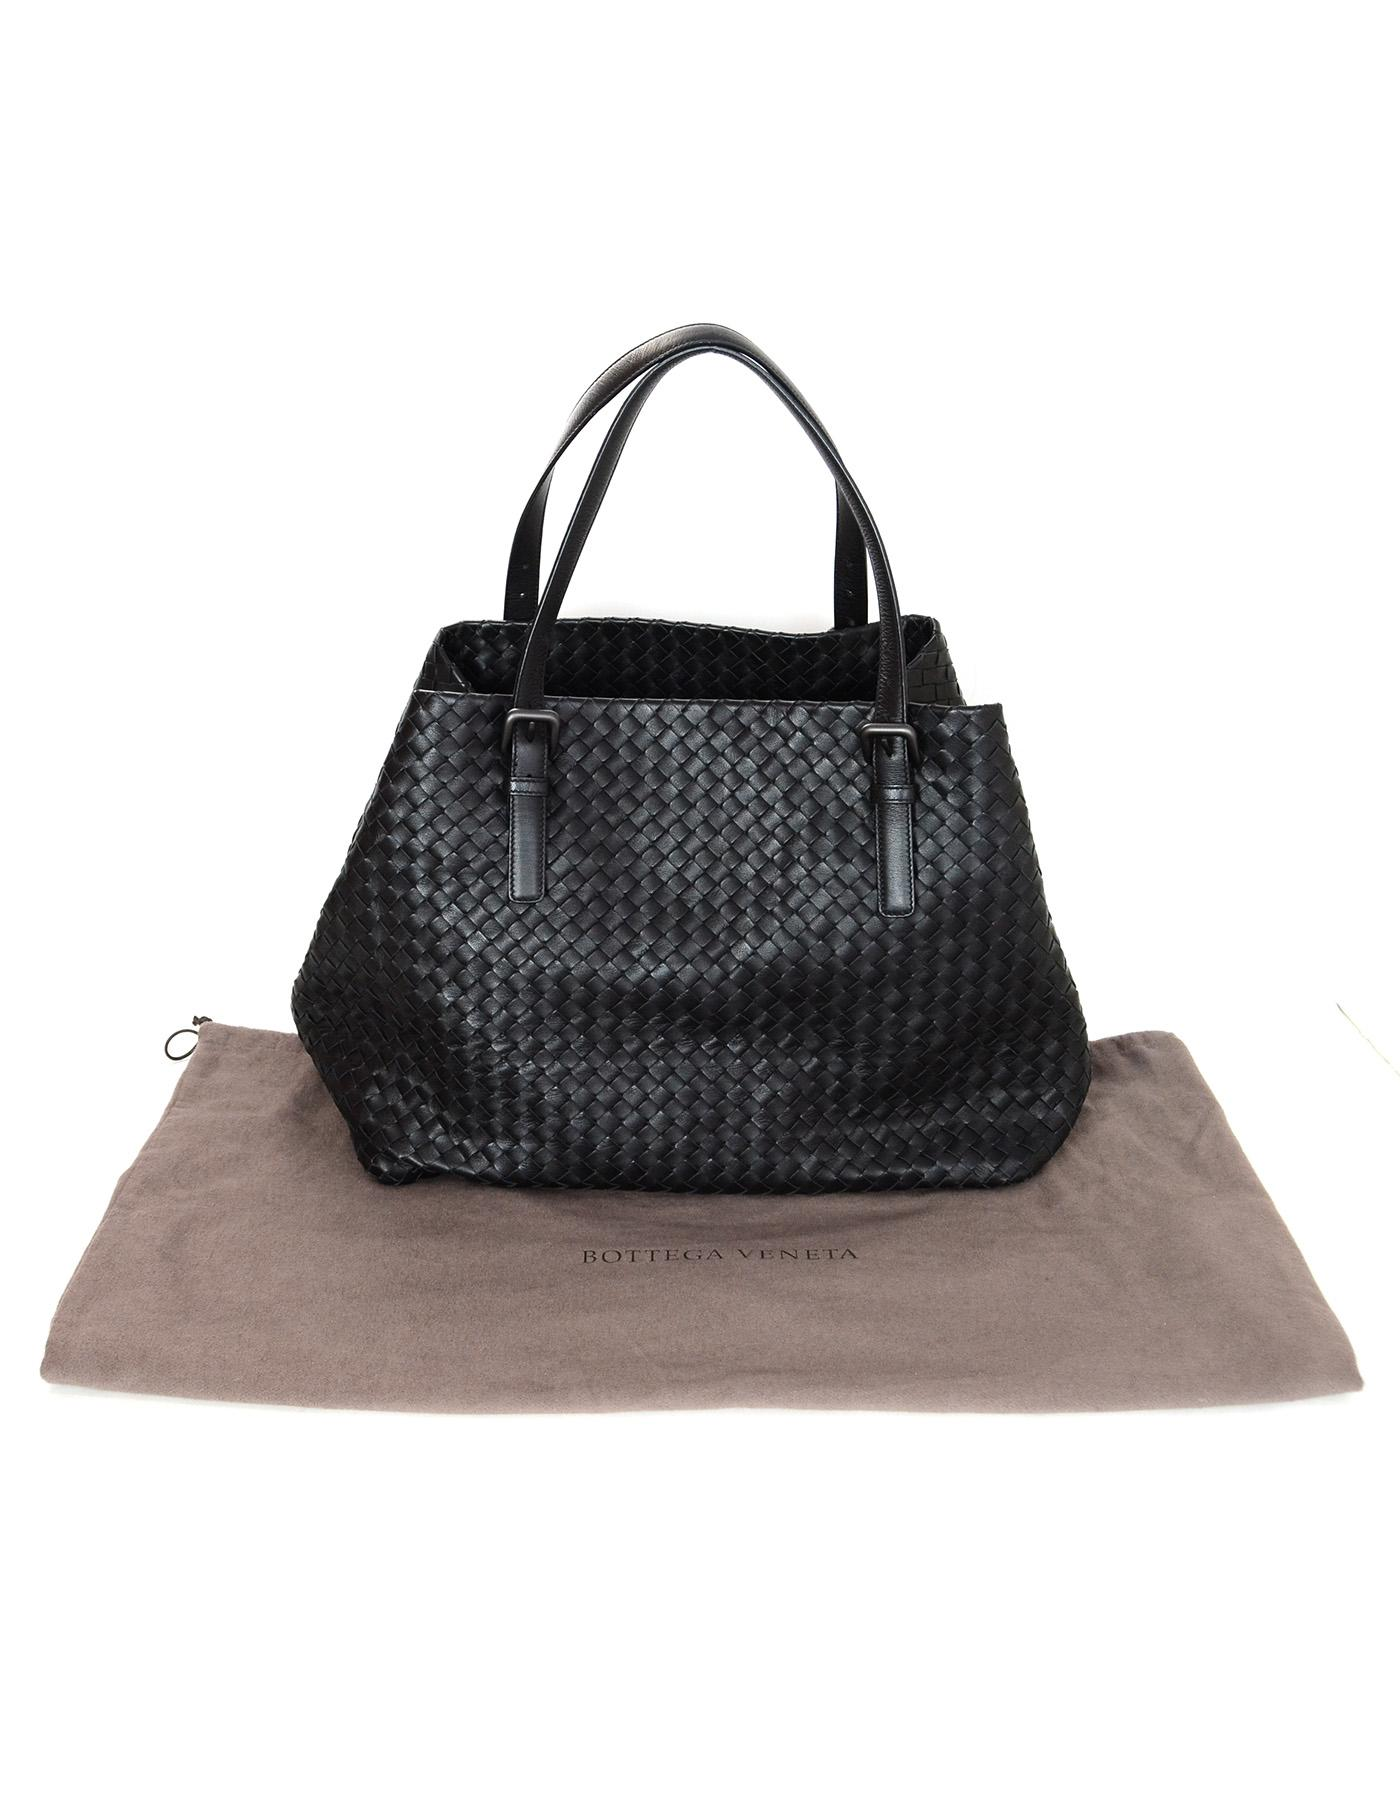 b8f2799b3f57 Bottega Veneta Black Woven Intrecciato Leather Large Cesta Tote Bag For  Sale at 1stdibs